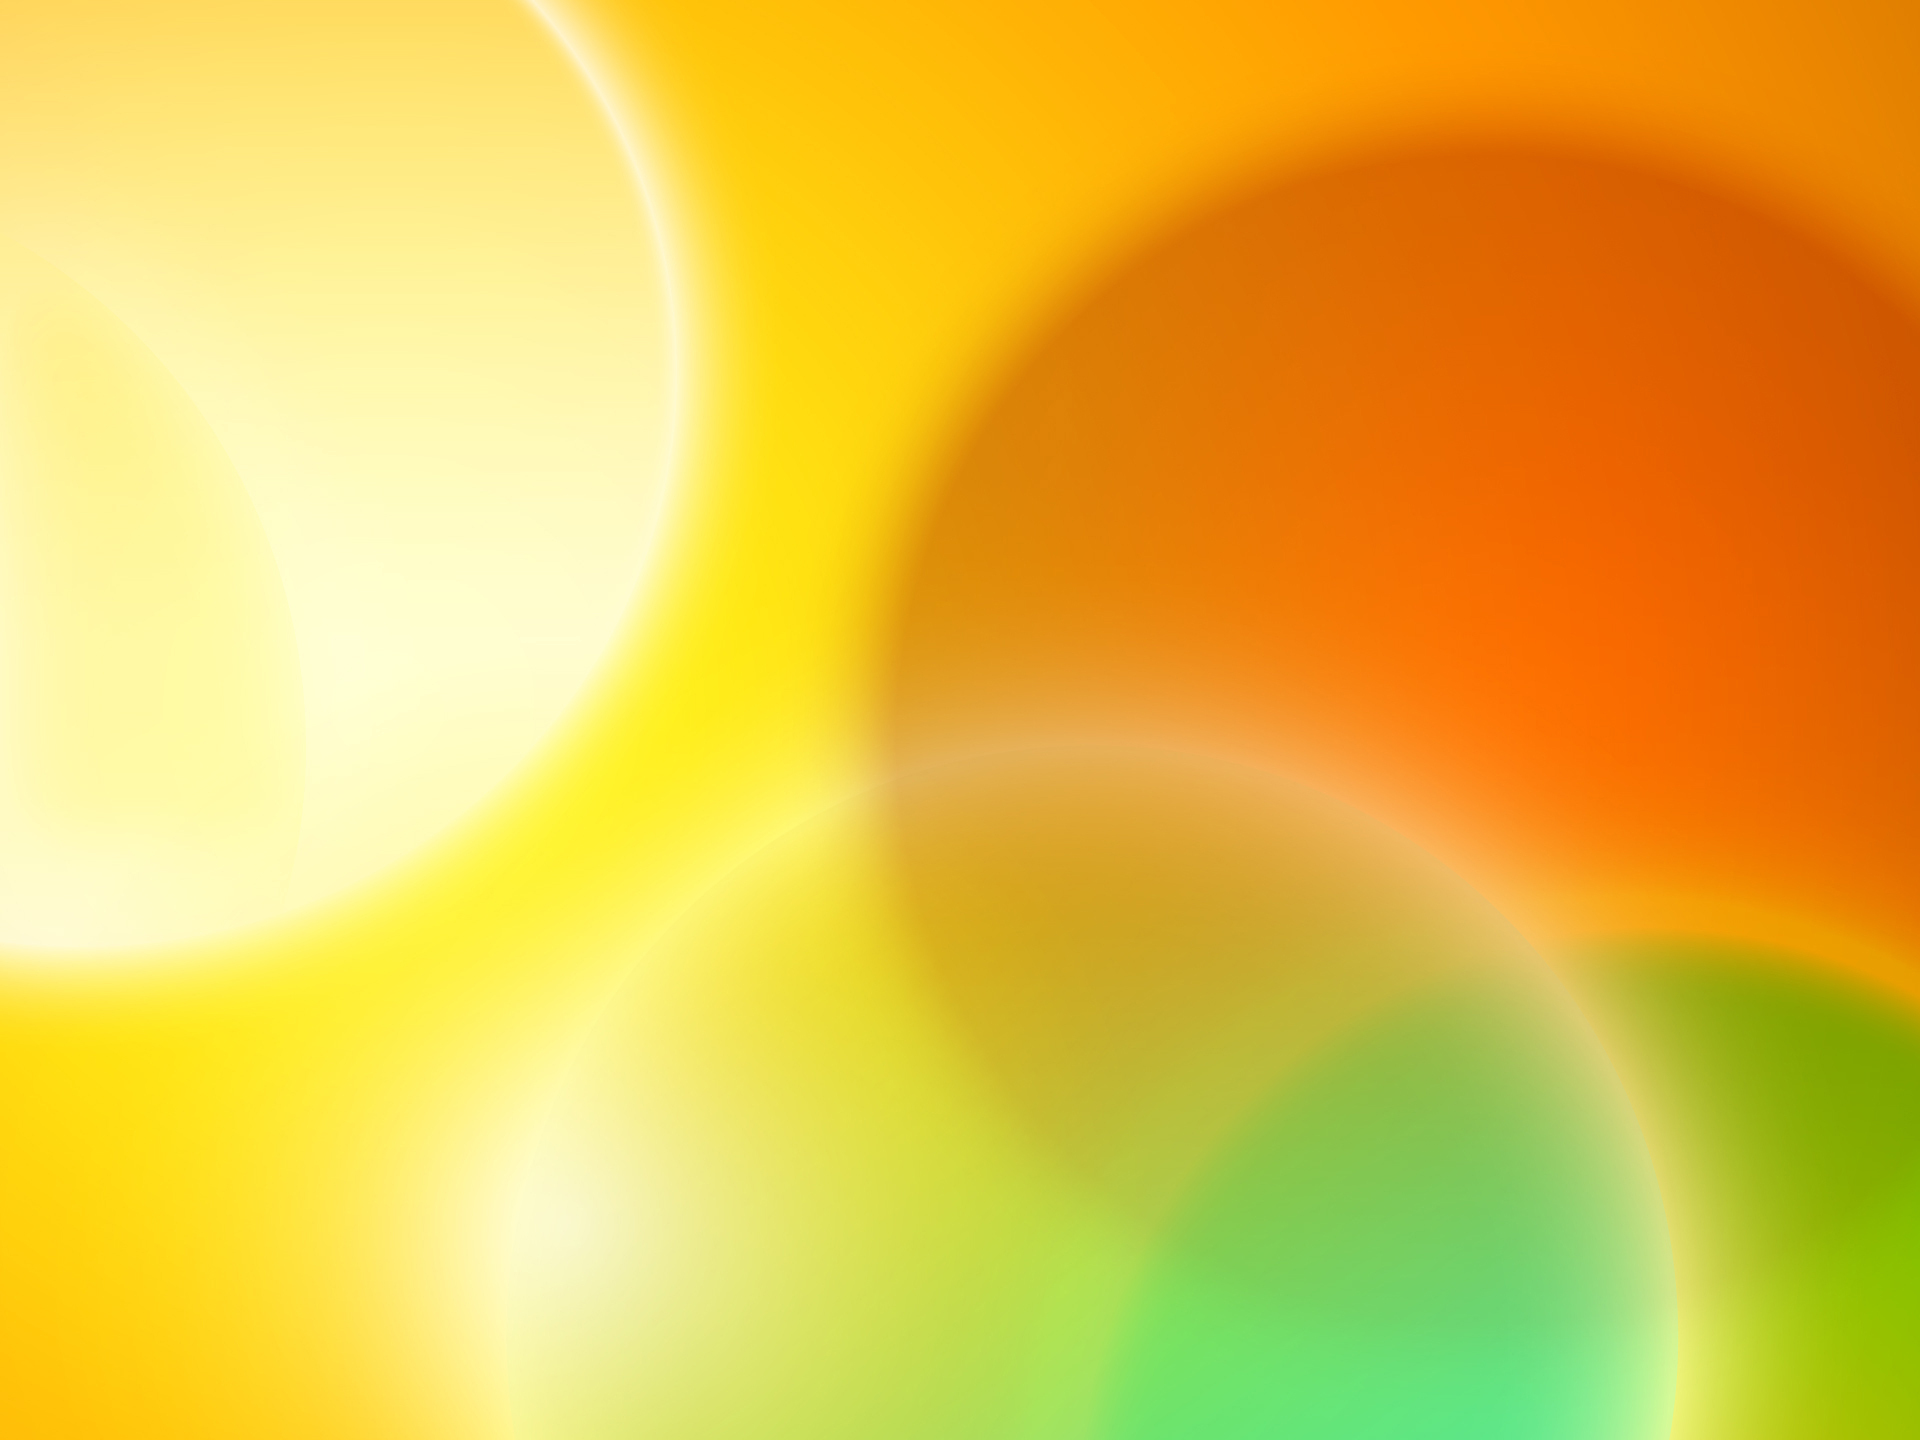 Yellow And Orange Background Wallpaper